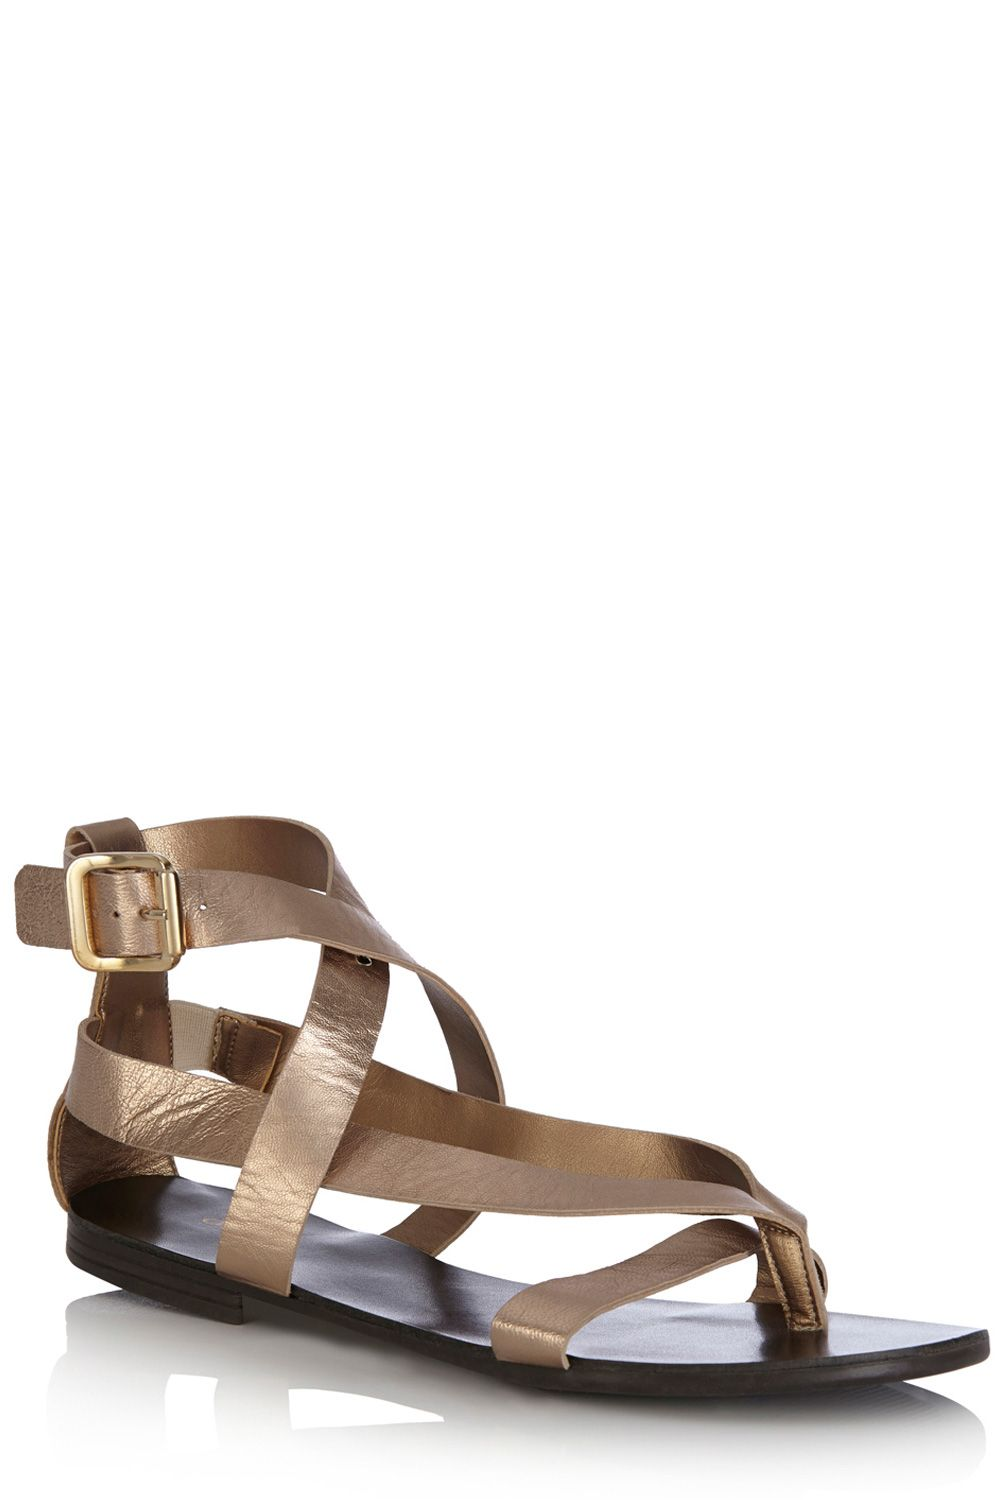 Isla strappy leather sandals